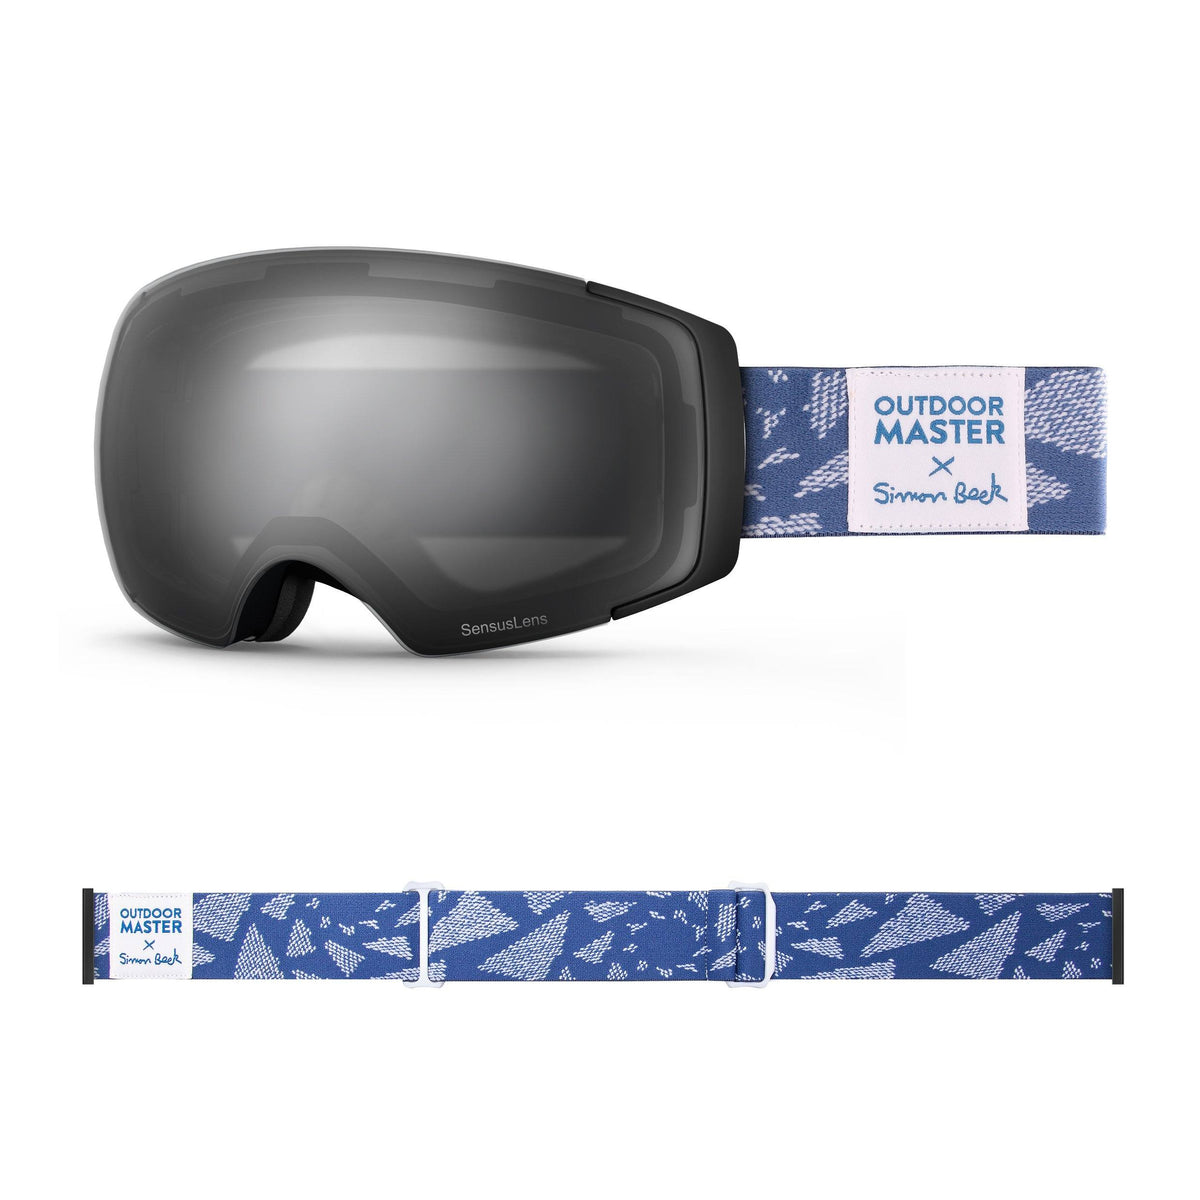 OutdoorMaster x Simon Beck Ski Goggles Pro Series - Snowshoeing Art Limited Edition OutdoorMaster SensusLens VLT 13-60% From Light to Dark Grey Flying Triangles